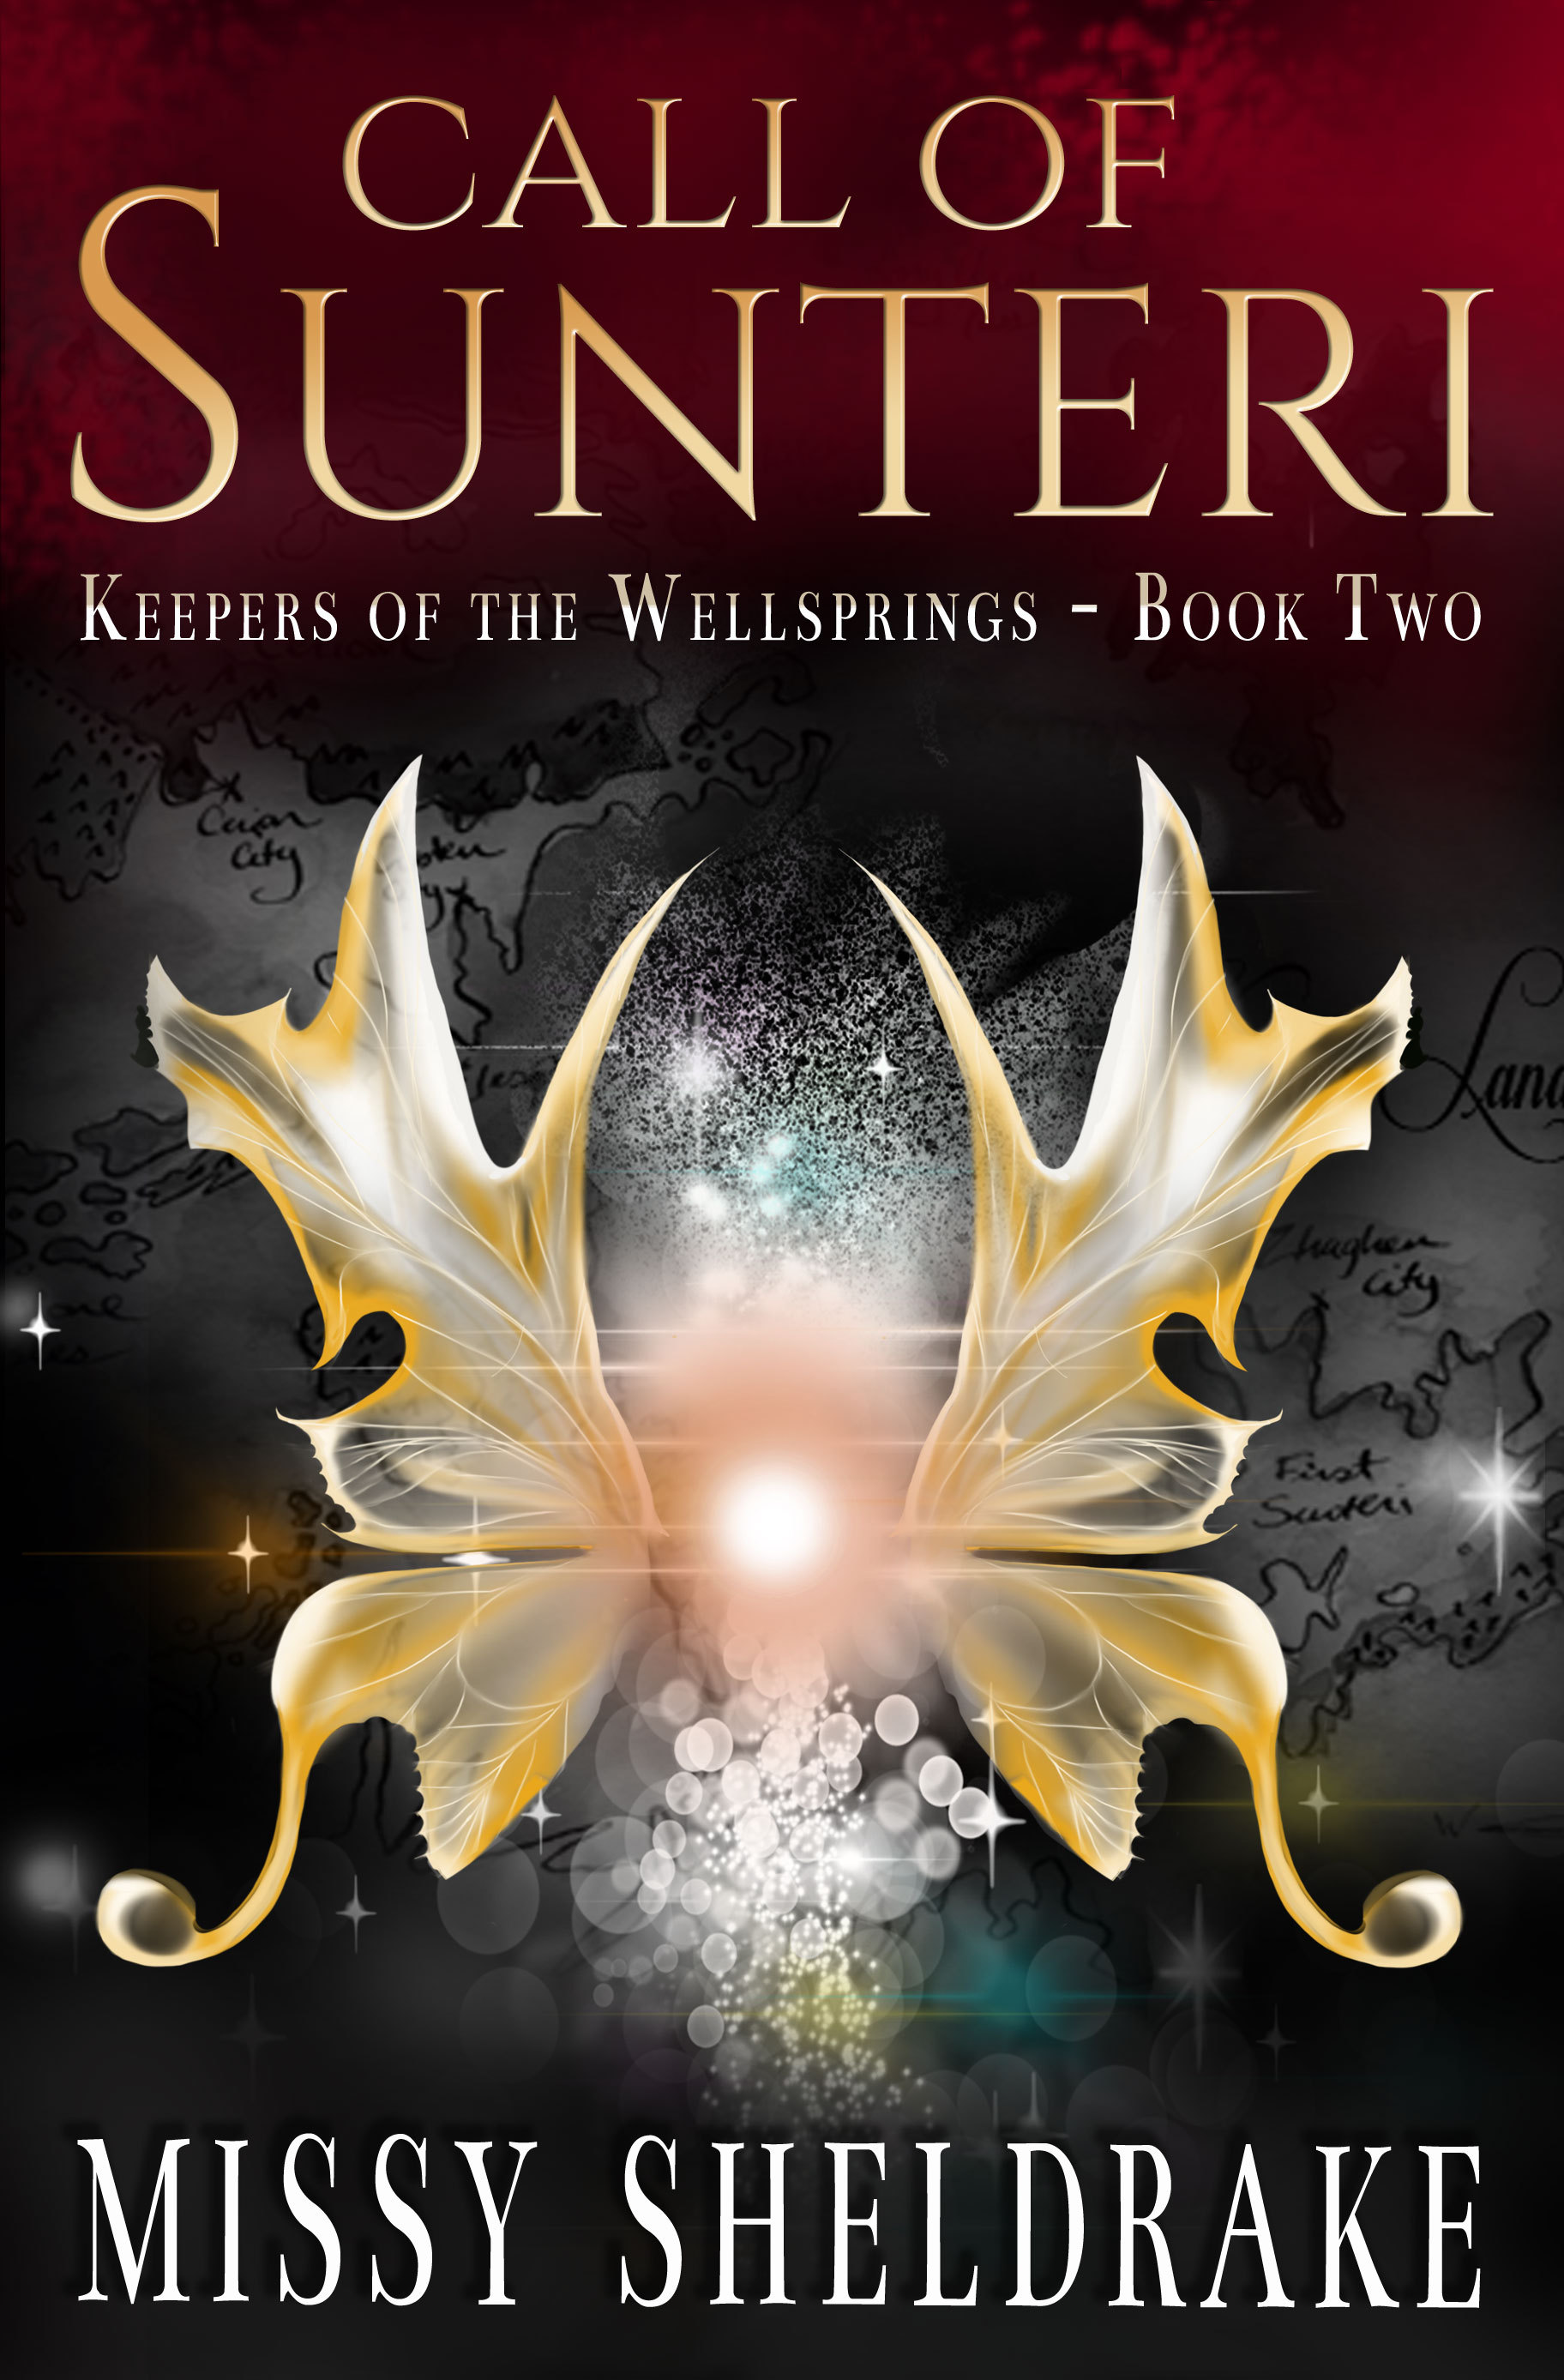 Call of Sunteri (Keepers of the Wellsprings Book 2) Missy Sheldrake